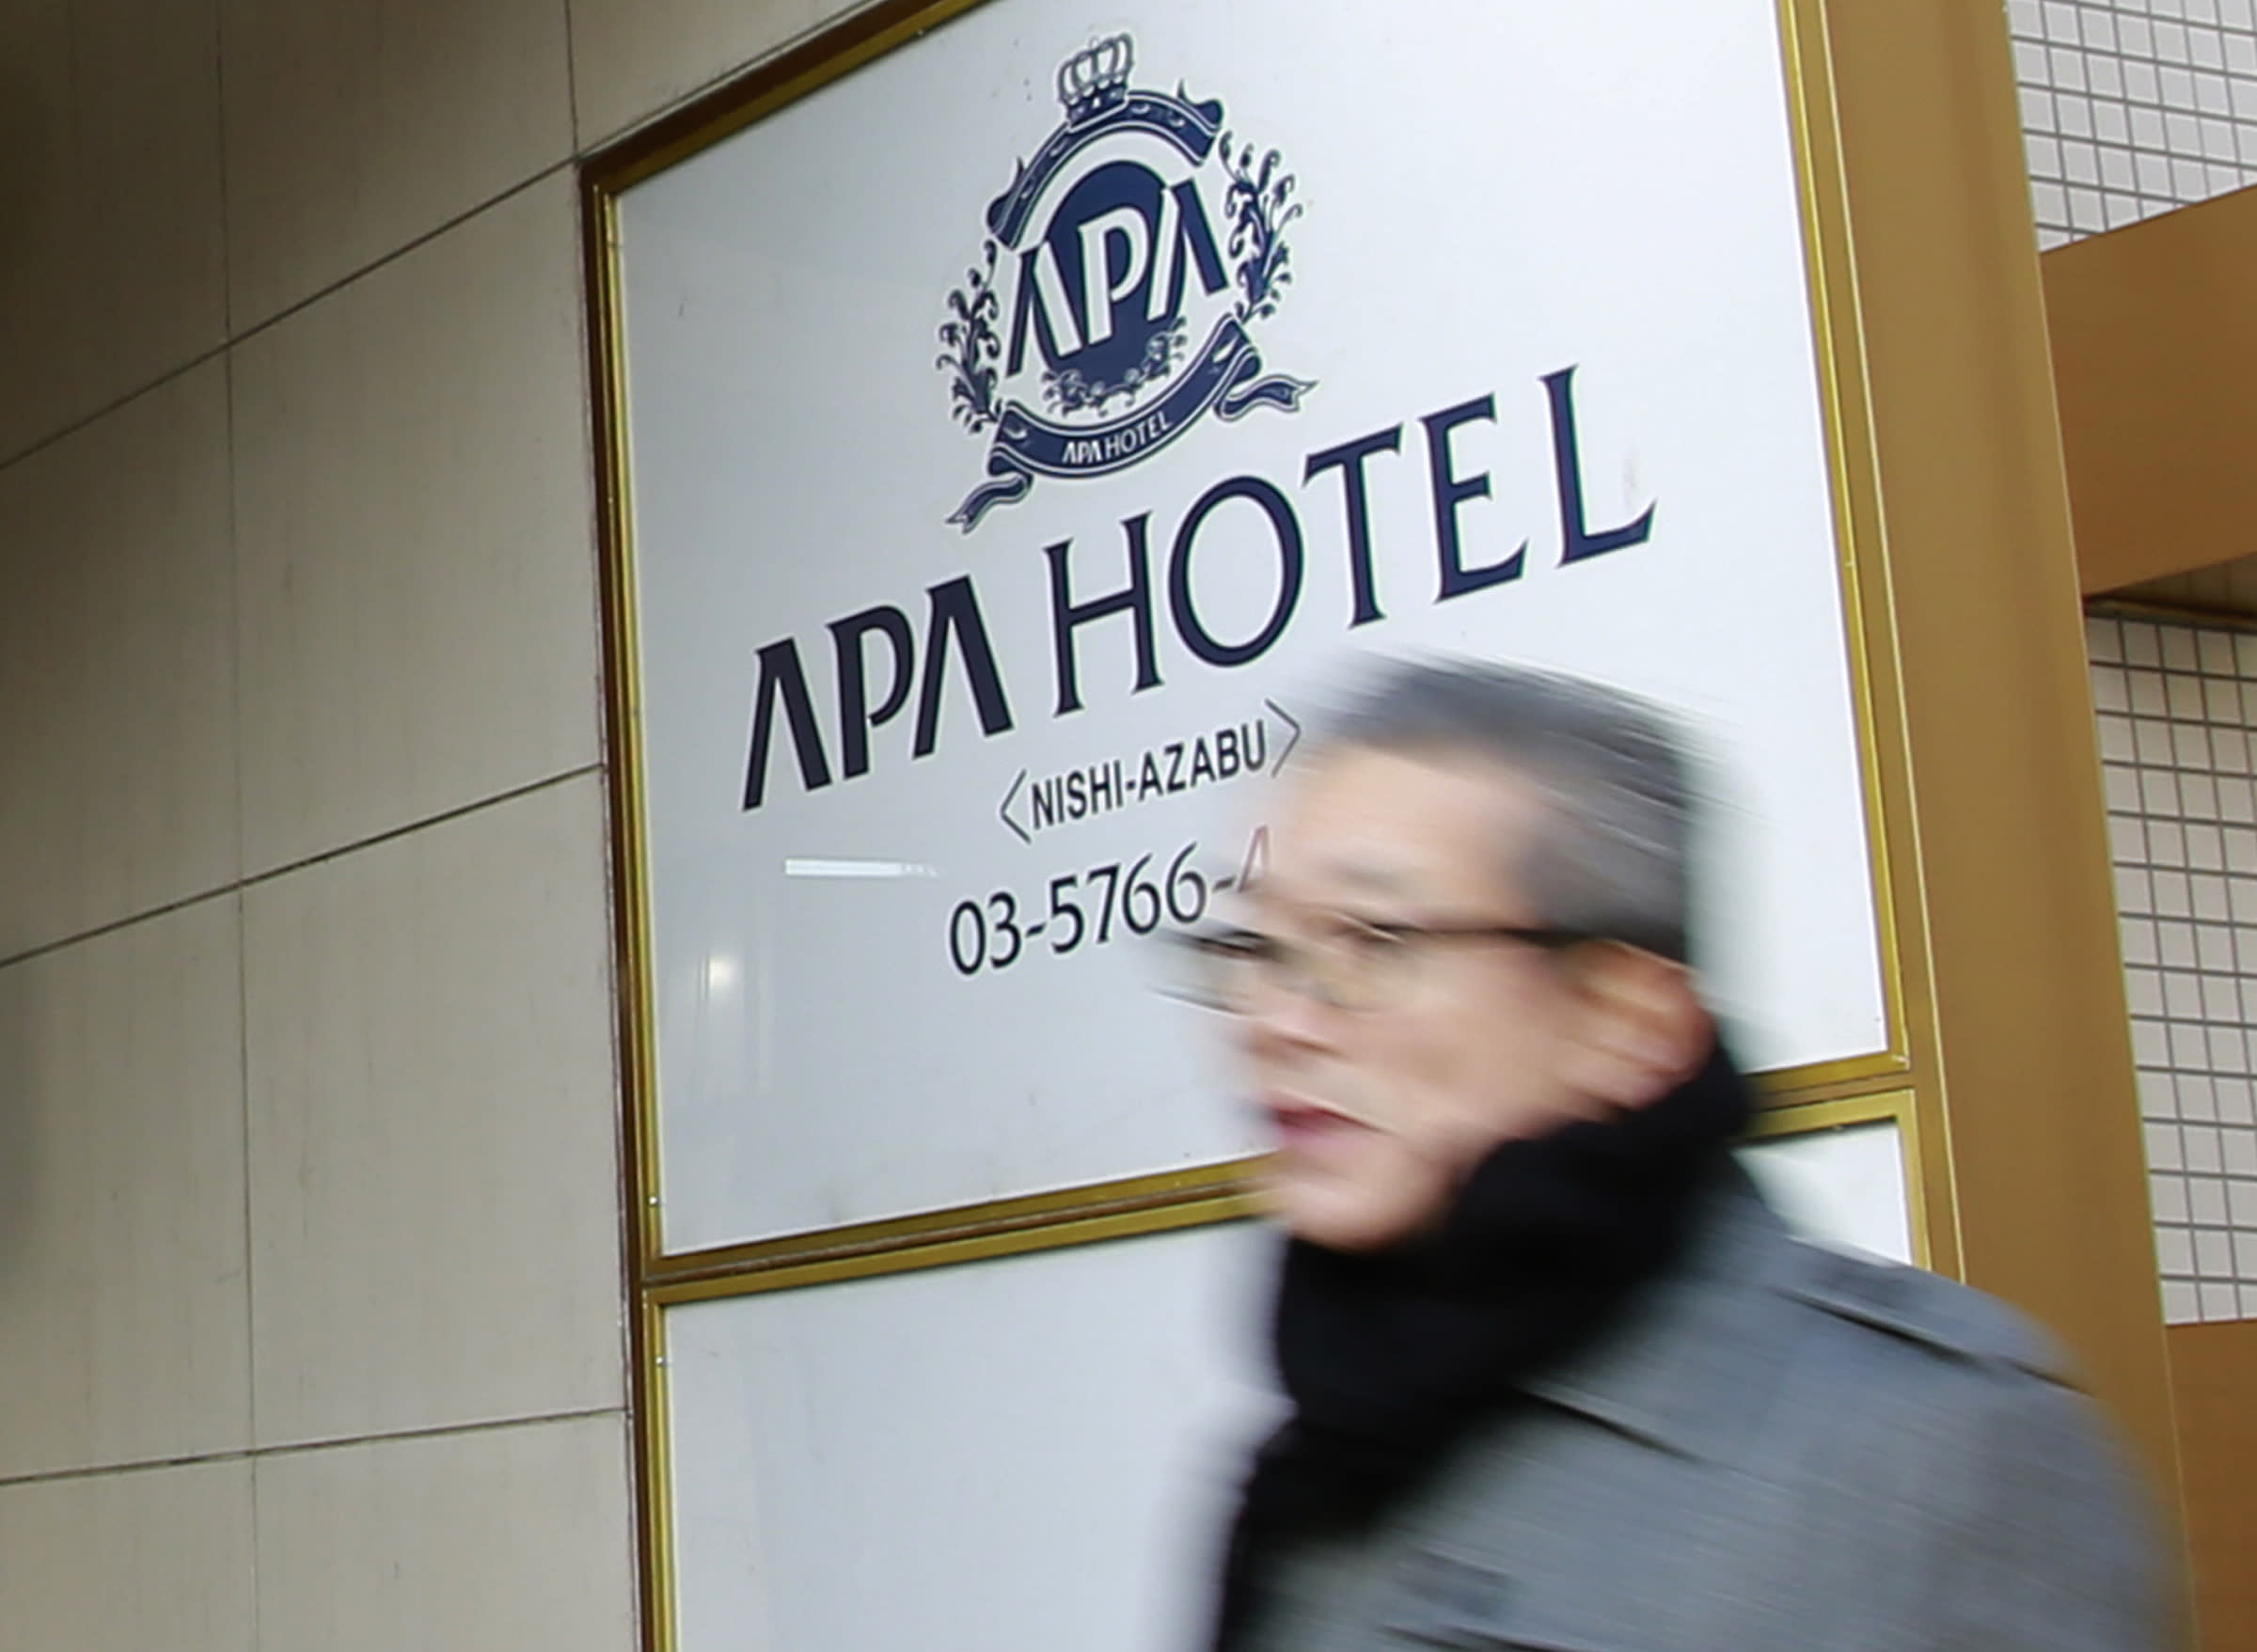 Japan hotel chain under fire over denial of Rape of Nanking